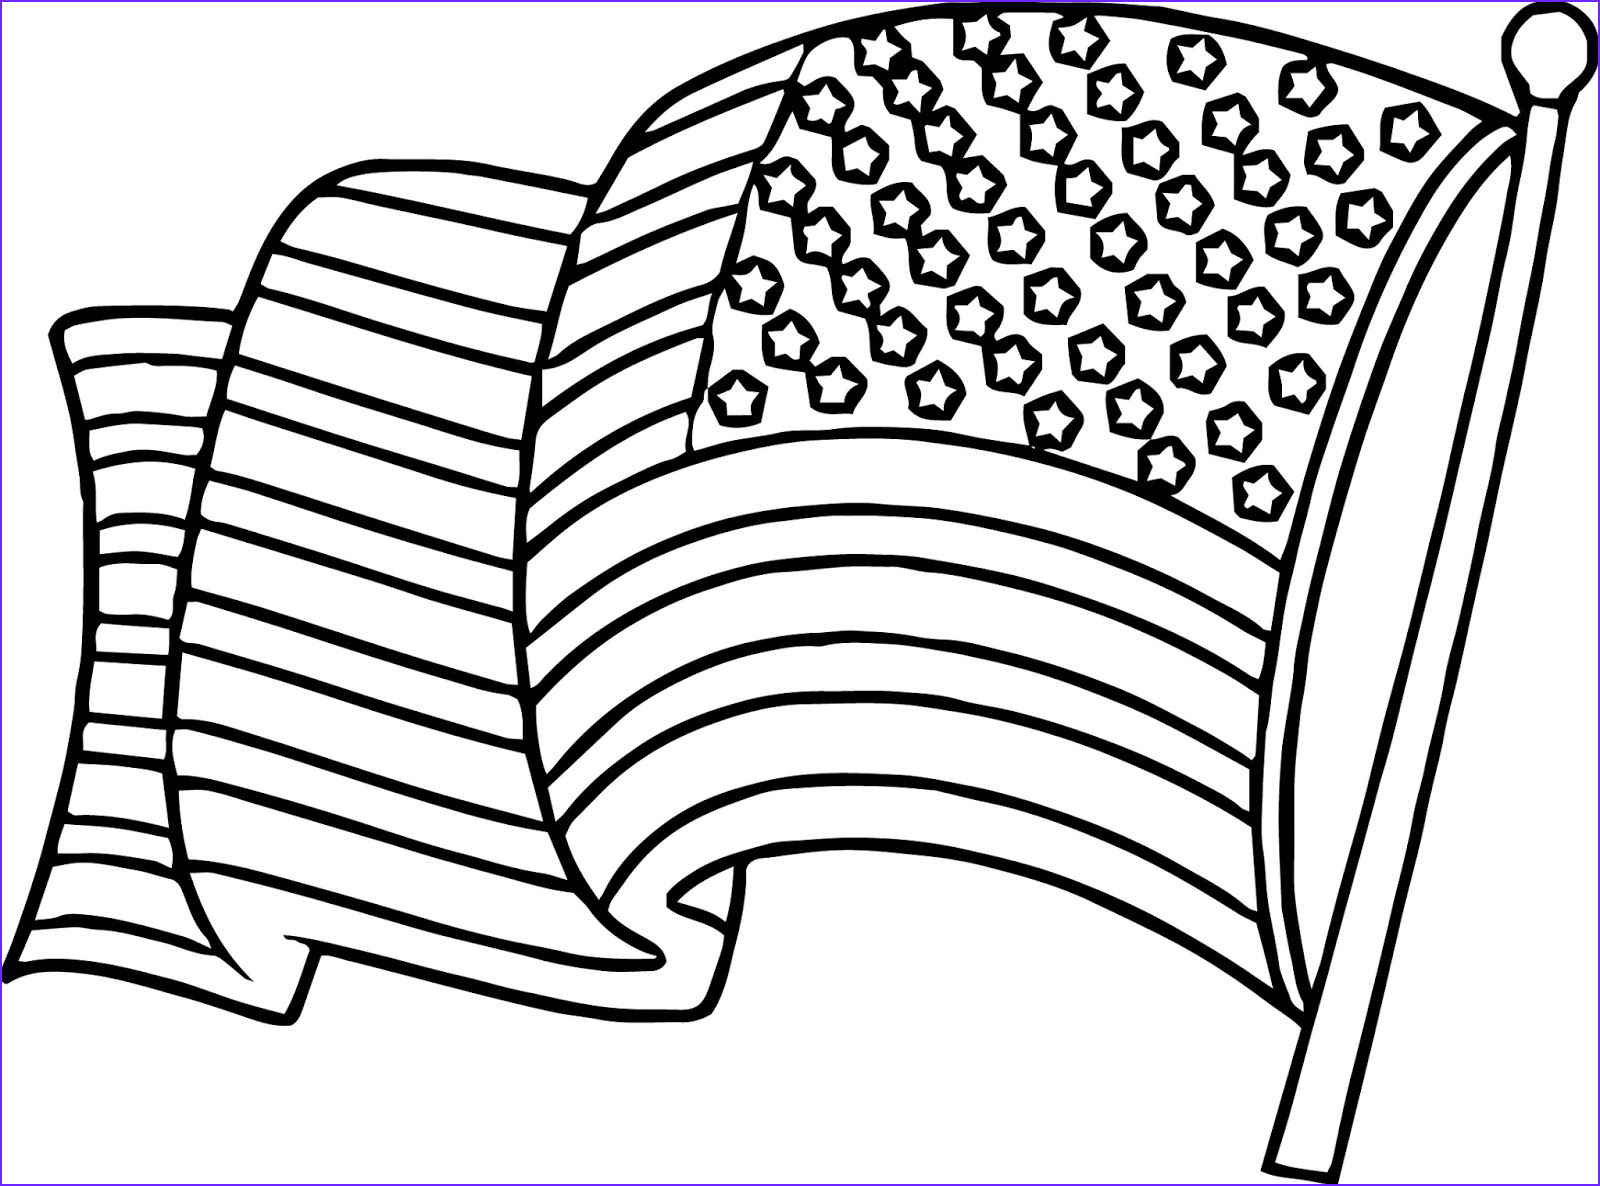 American Flag Coloring Page New Gallery American Flag Coloring Pages Best Coloring Pages for Kids